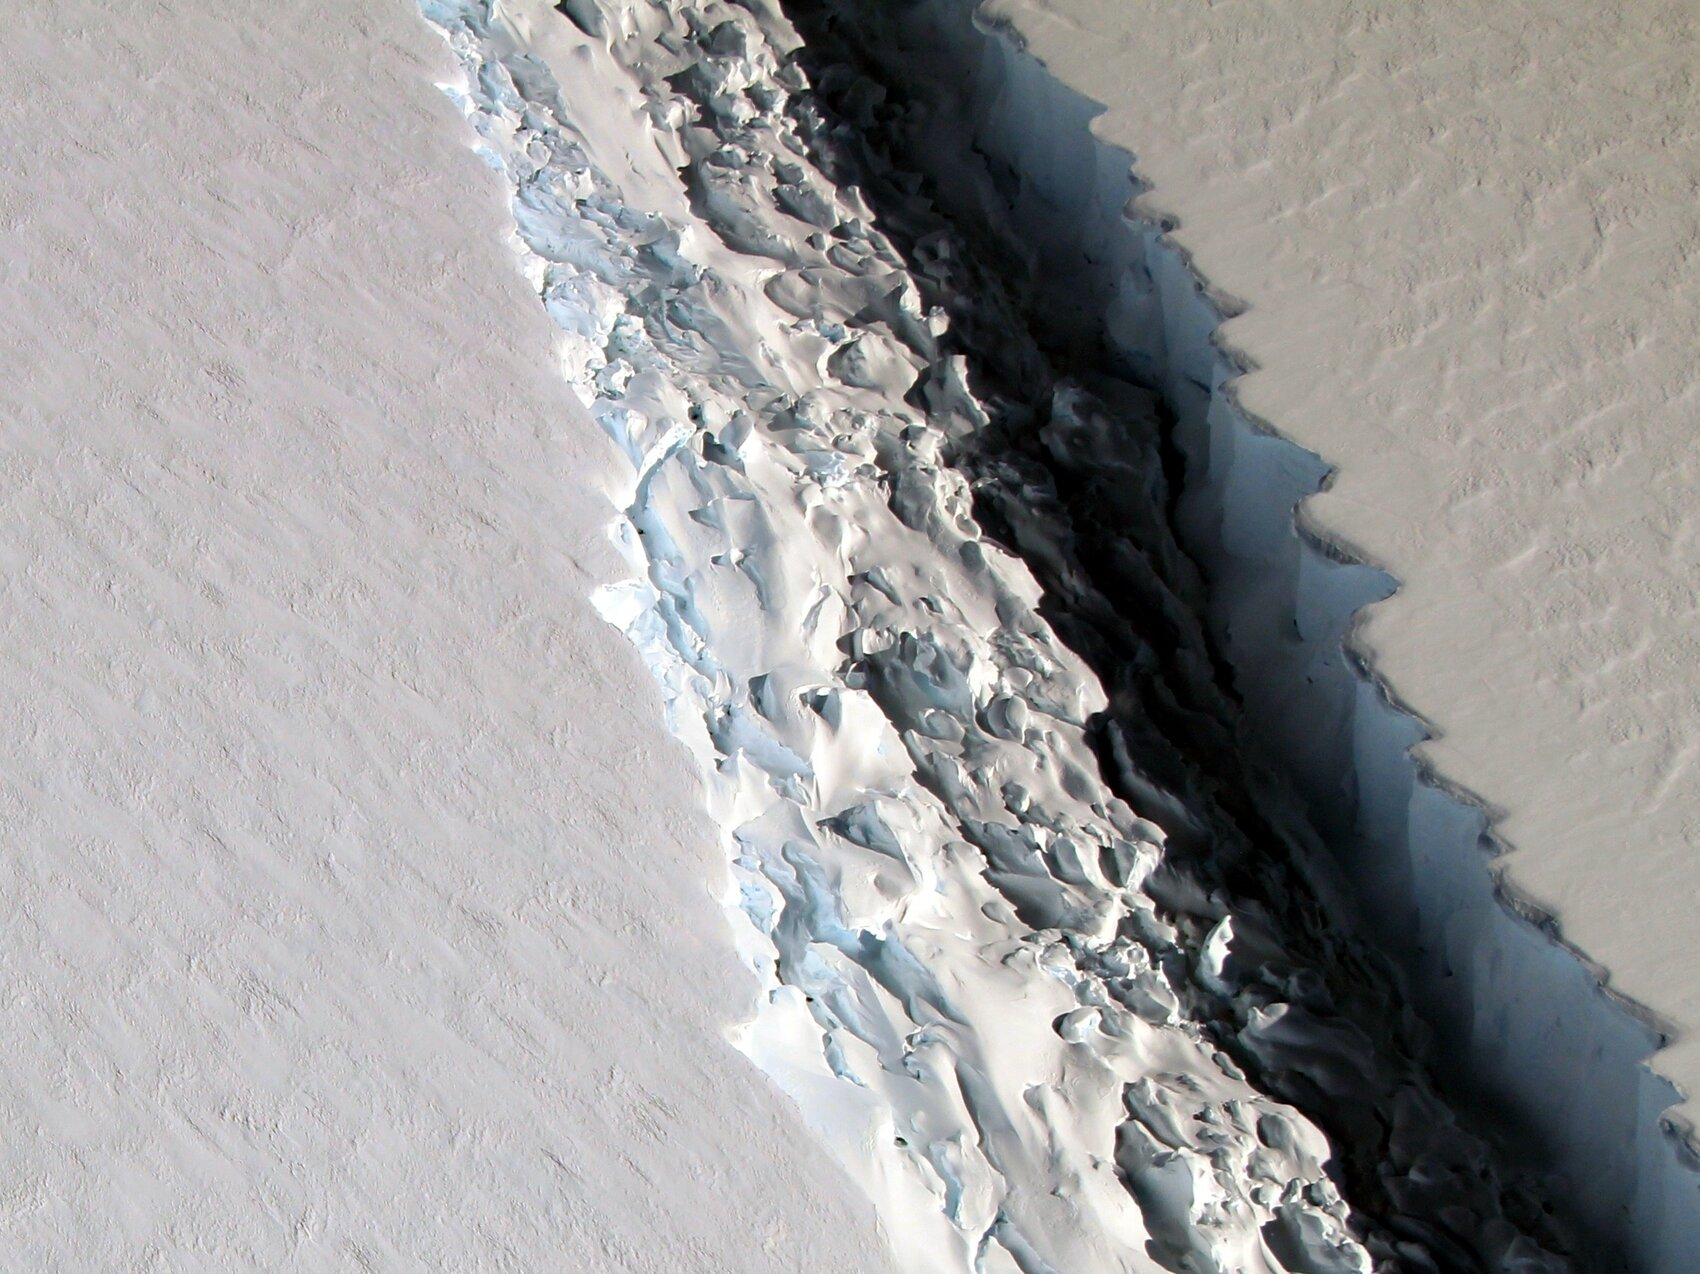 The breakup, while astounding in size, will not have an effect on global sea levels because this chunk of ice was already floating on water when it broke off, an expert says.     (John Sonntag/NASA)